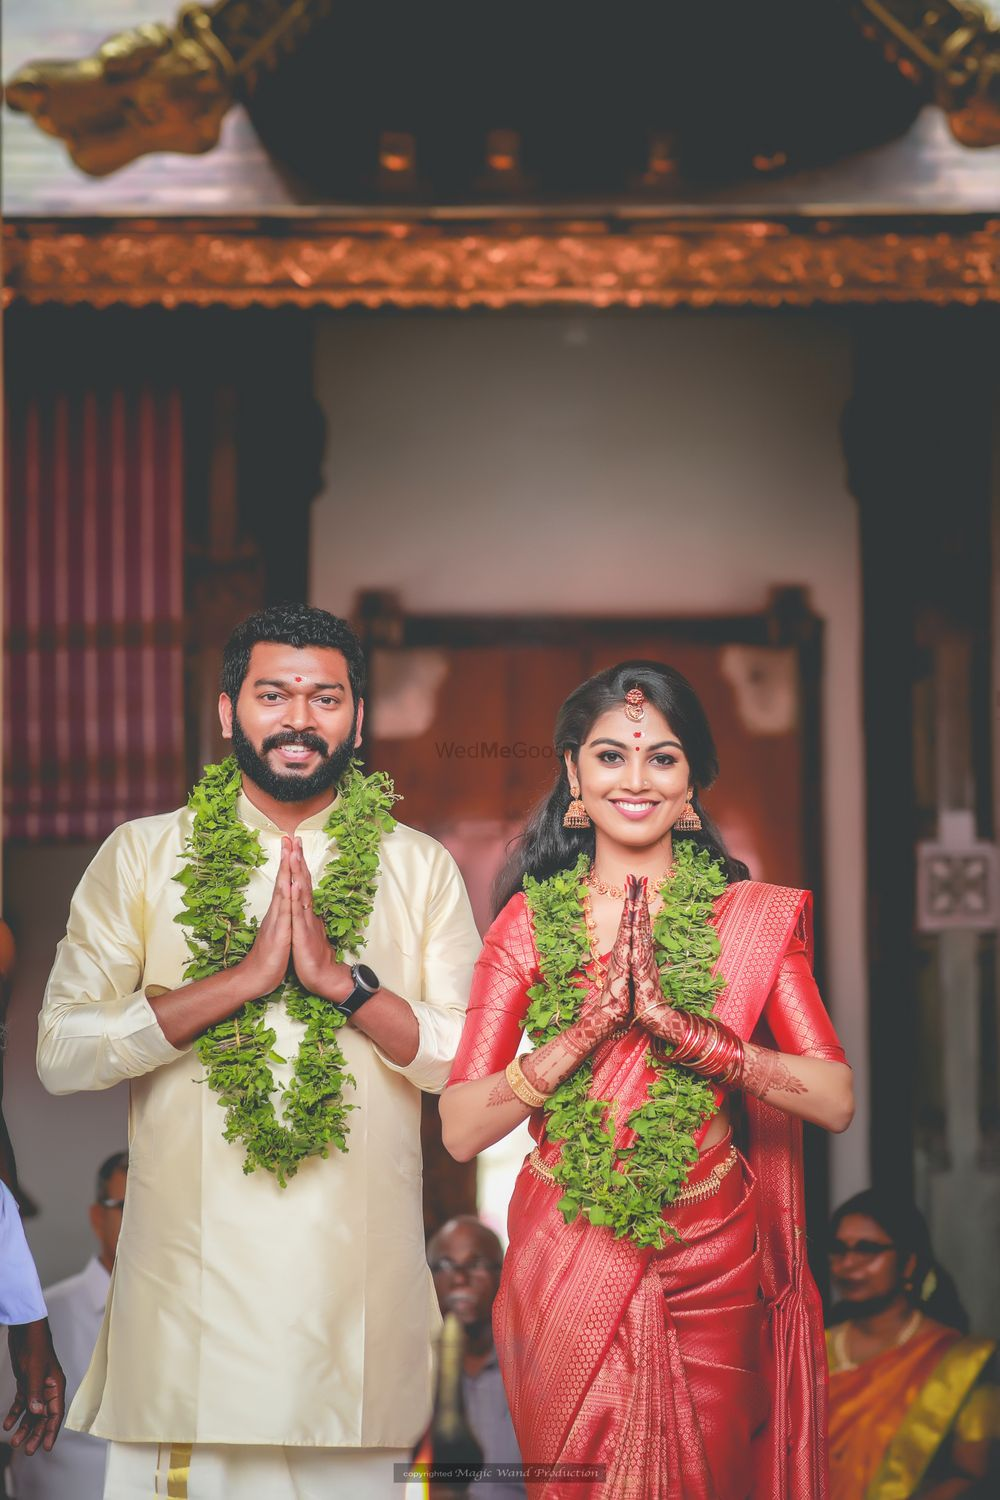 Photo of A south Indian couple on their wedding day